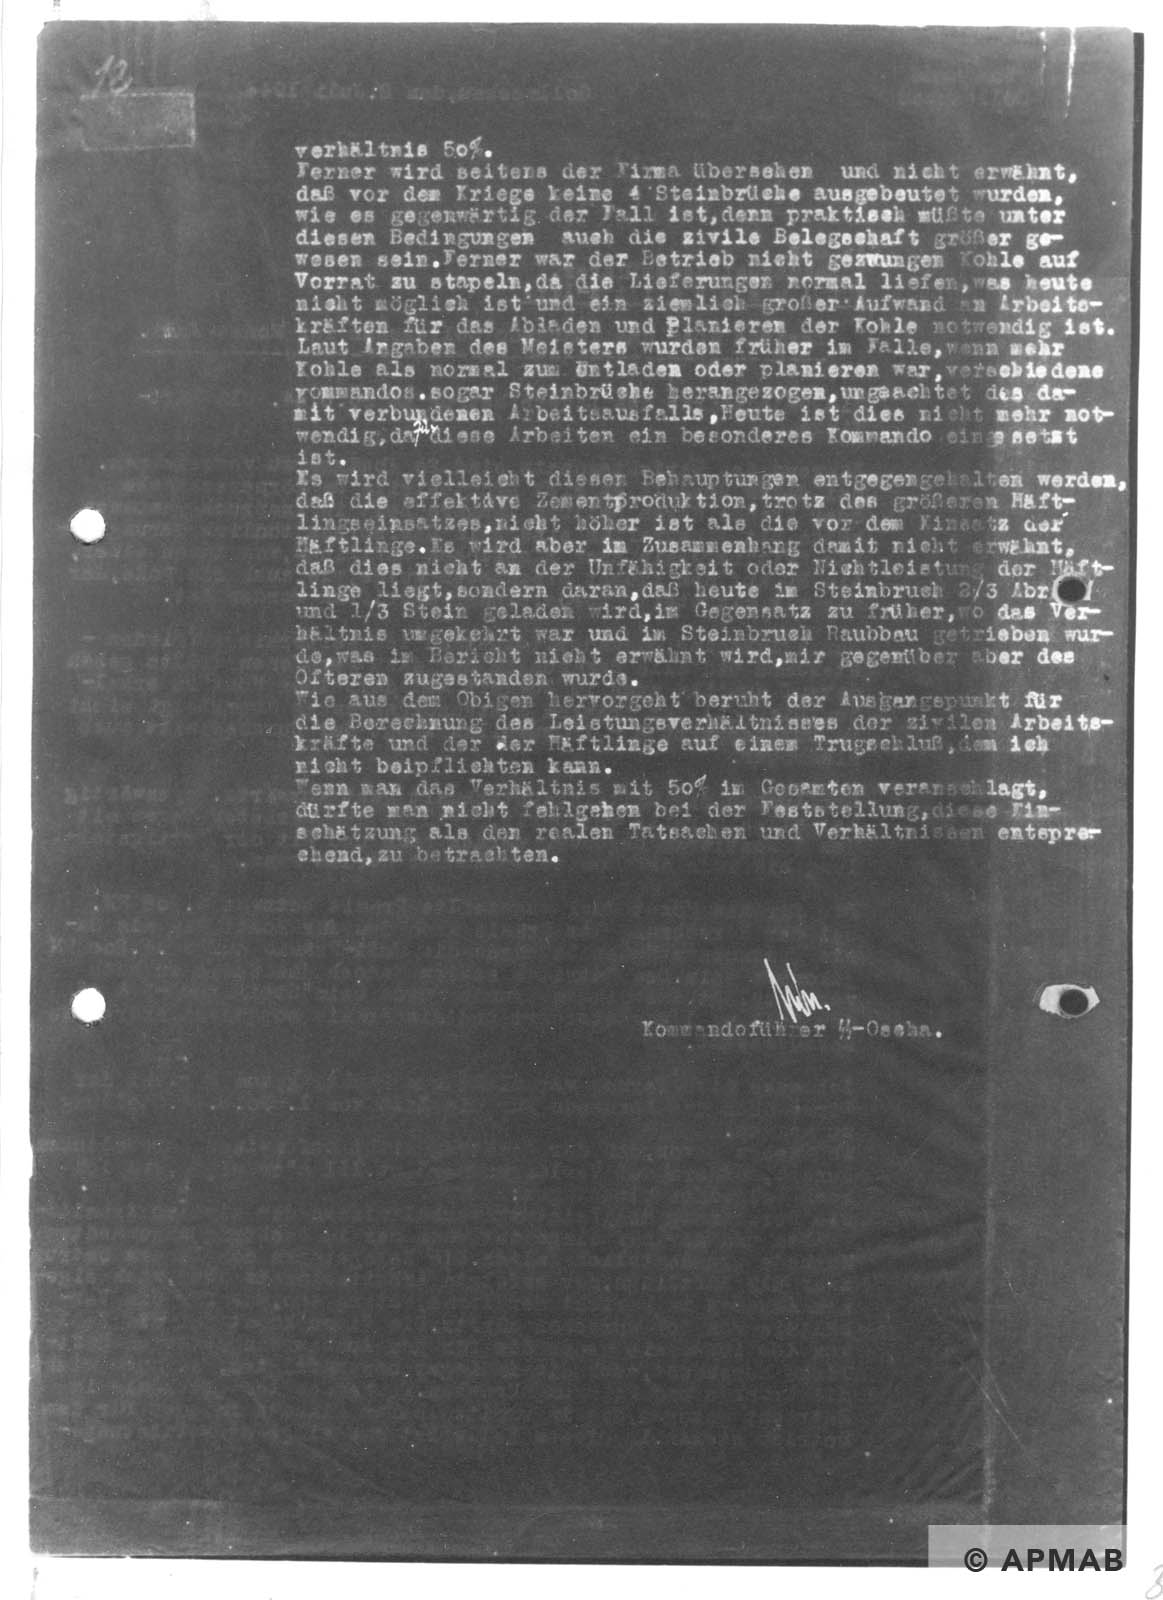 Report on Golleschau sub camp June 1944 APMAB nr inw. 30523 str. 32